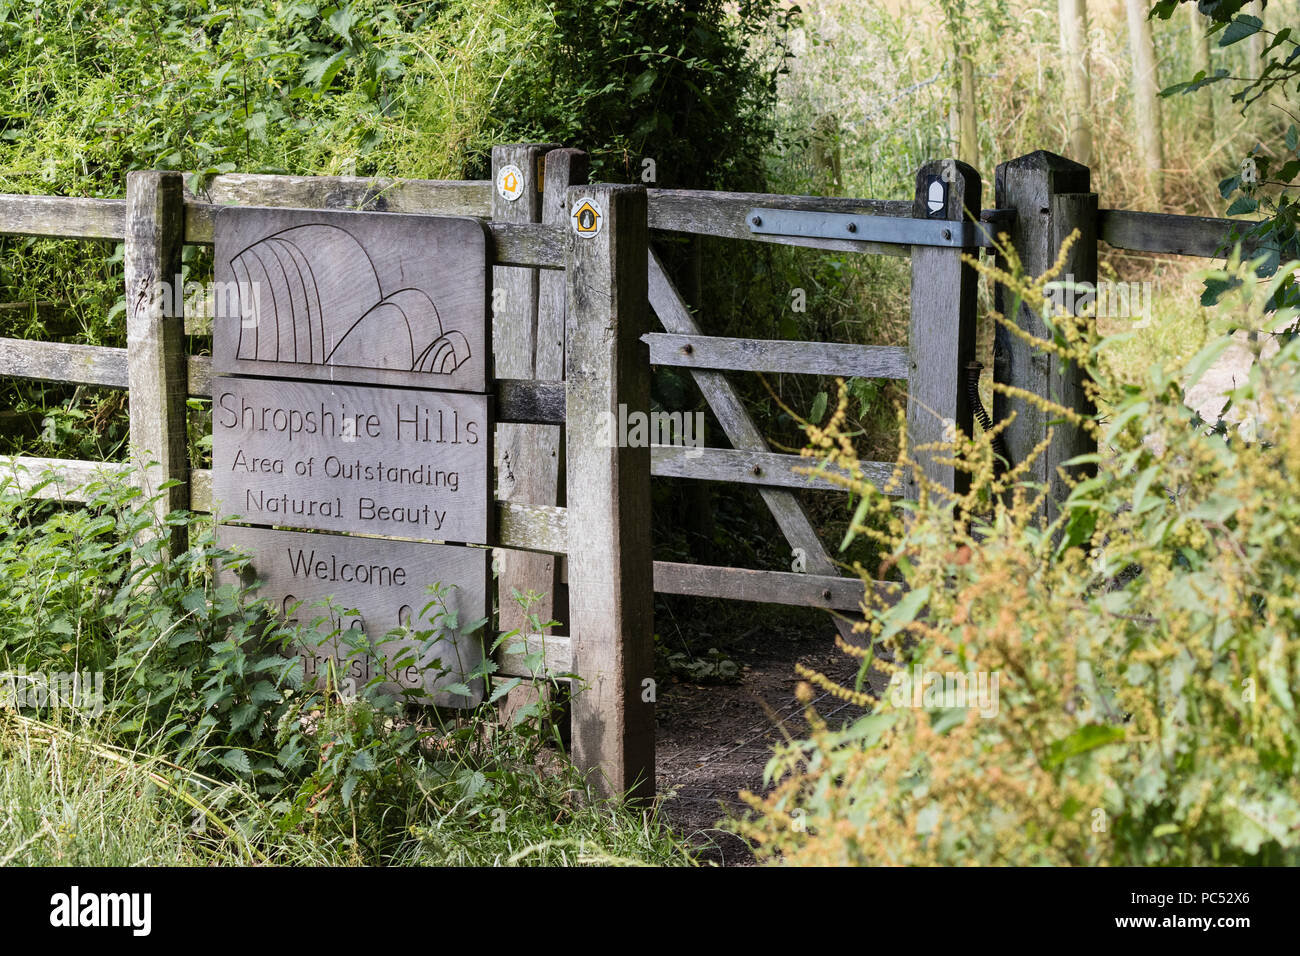 Offa's Dyke long distance footpath passes through a waymarked kissing gate and on into the Shropshire Hills Area of Outstanding Natural Beauty - Stock Image